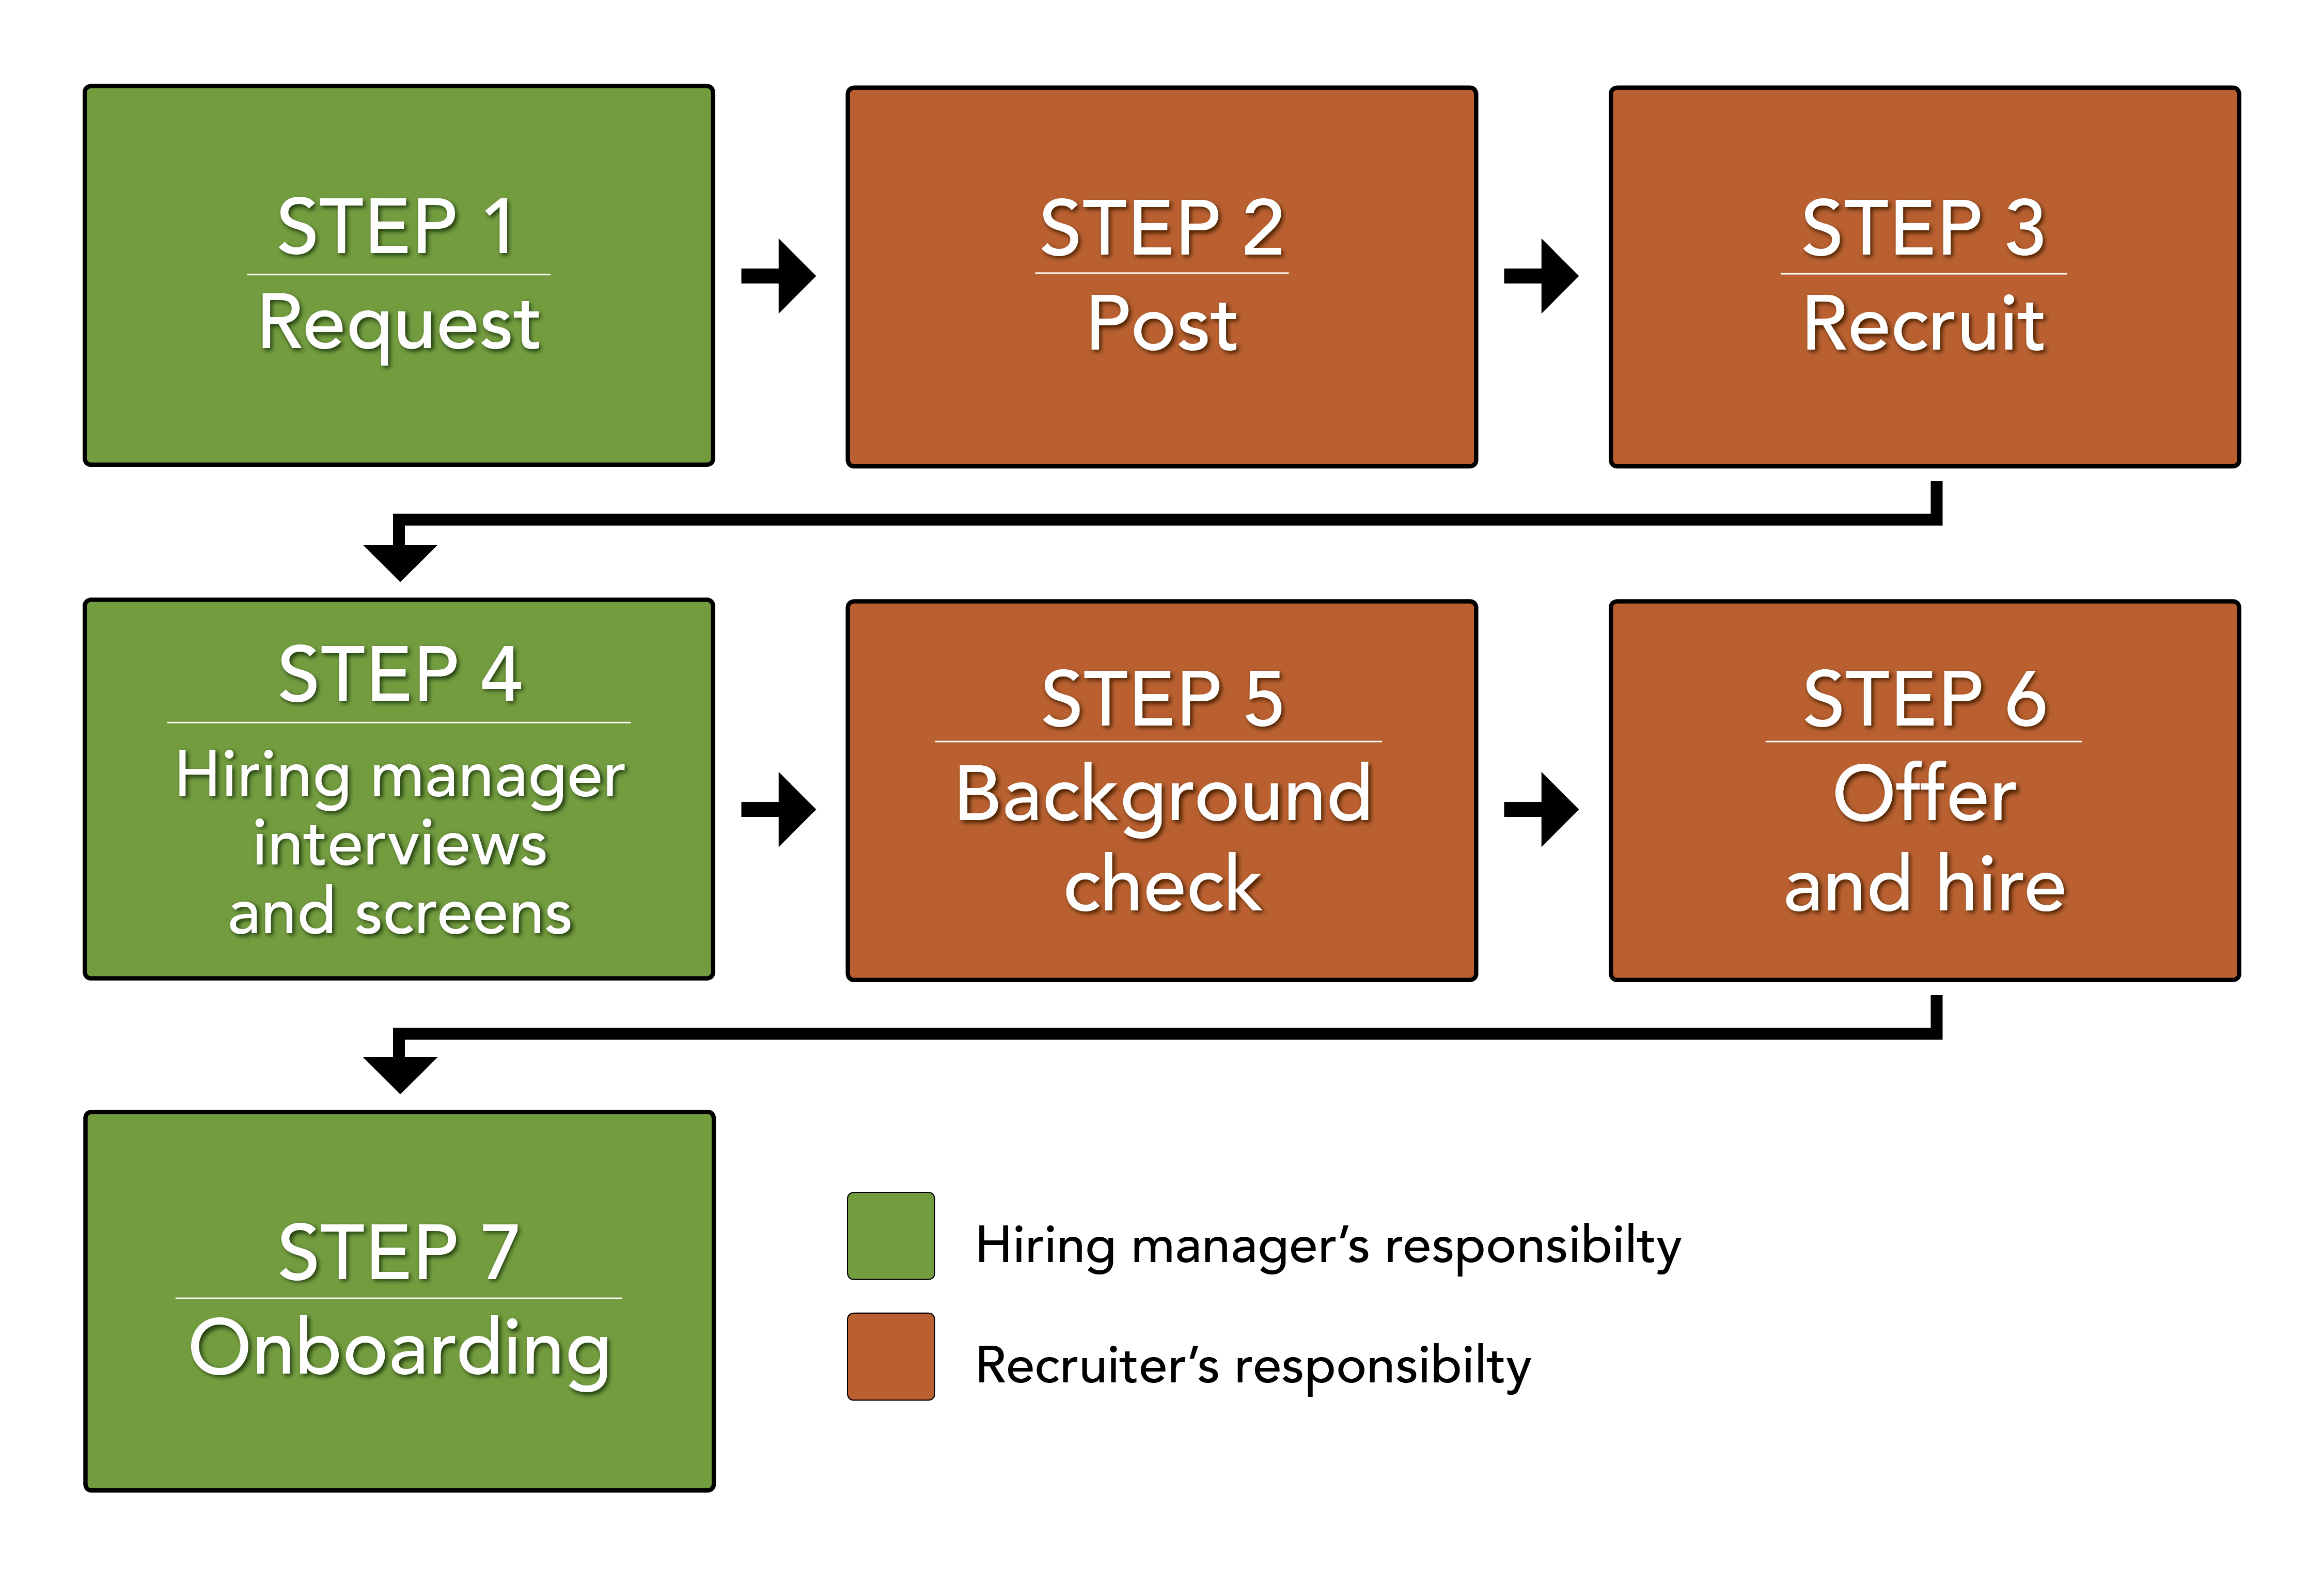 Overview of Hiring Process